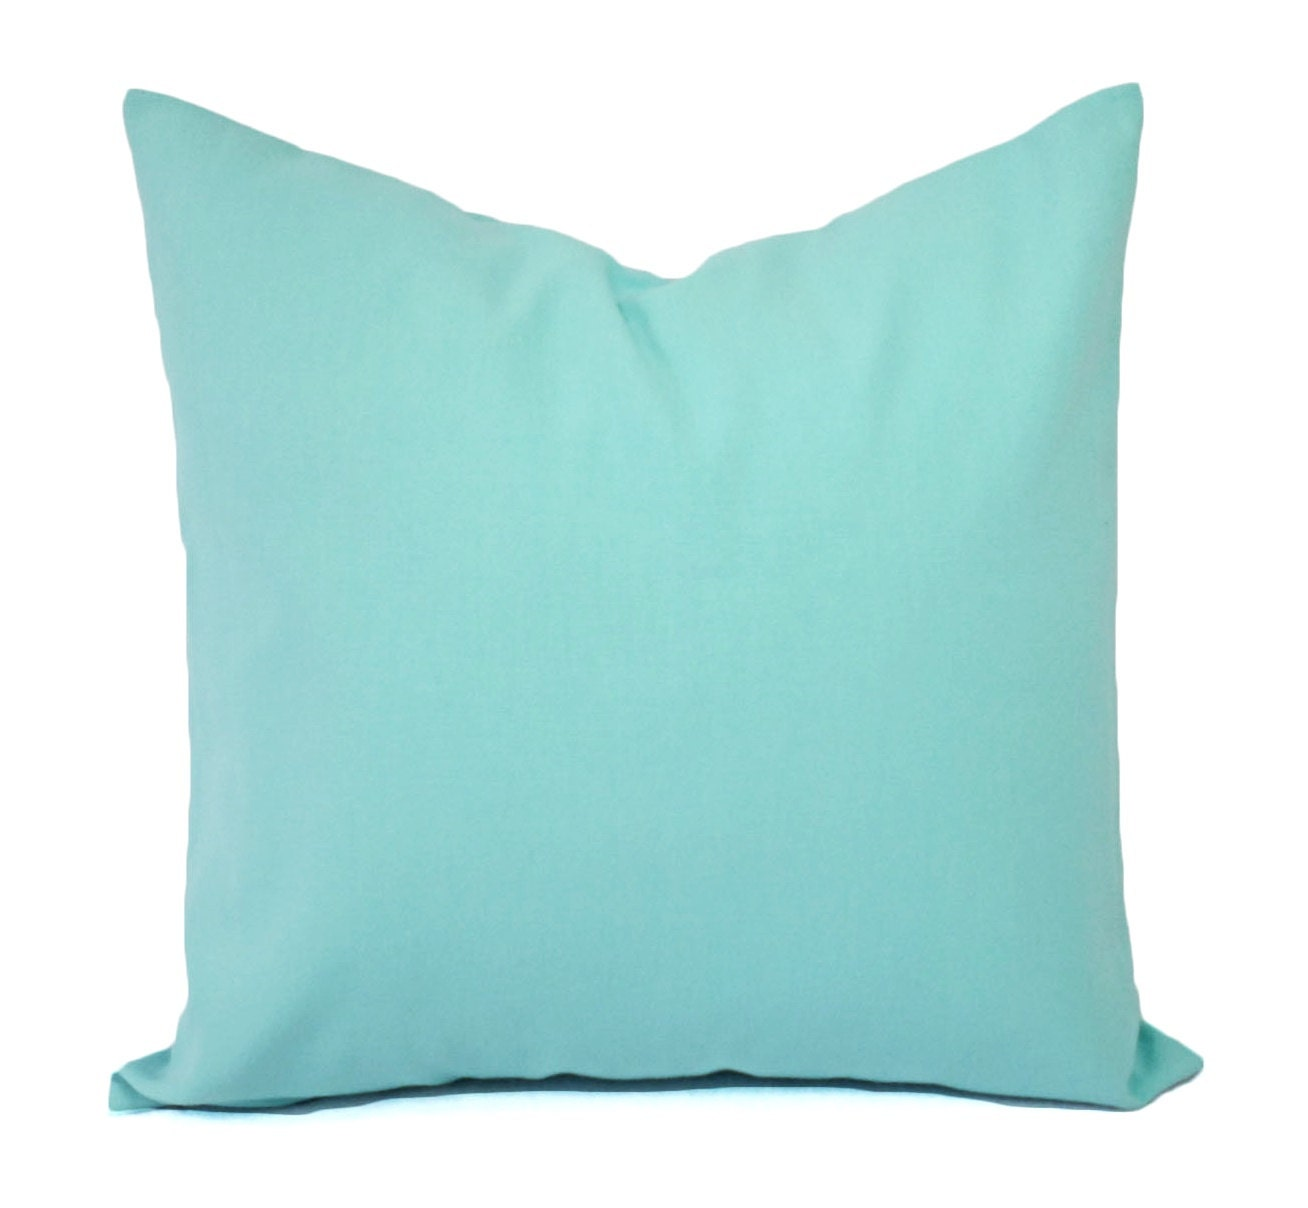 Blue And Aqua Throw Pillows : Two Aqua Pillow Covers Solid Teal Throw Pillows Aqua Couch